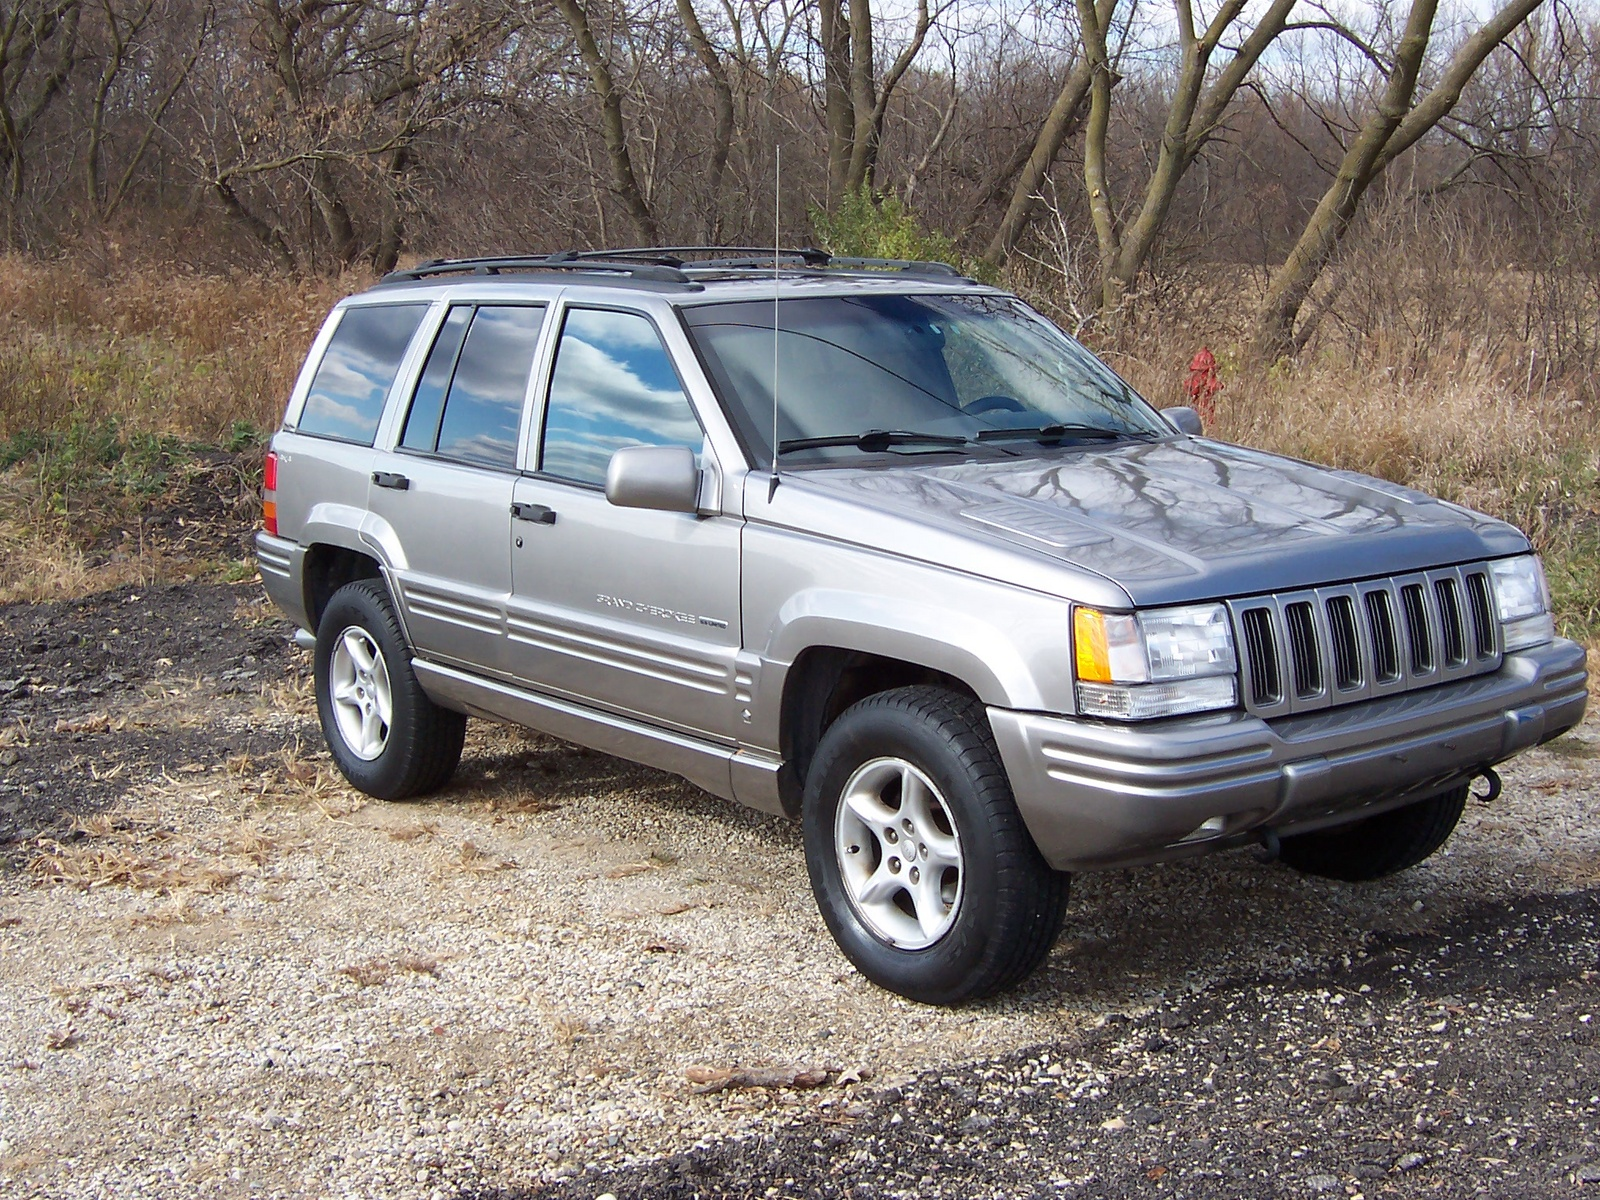 1998 jeep grand cherokee pictures cargurus. Black Bedroom Furniture Sets. Home Design Ideas